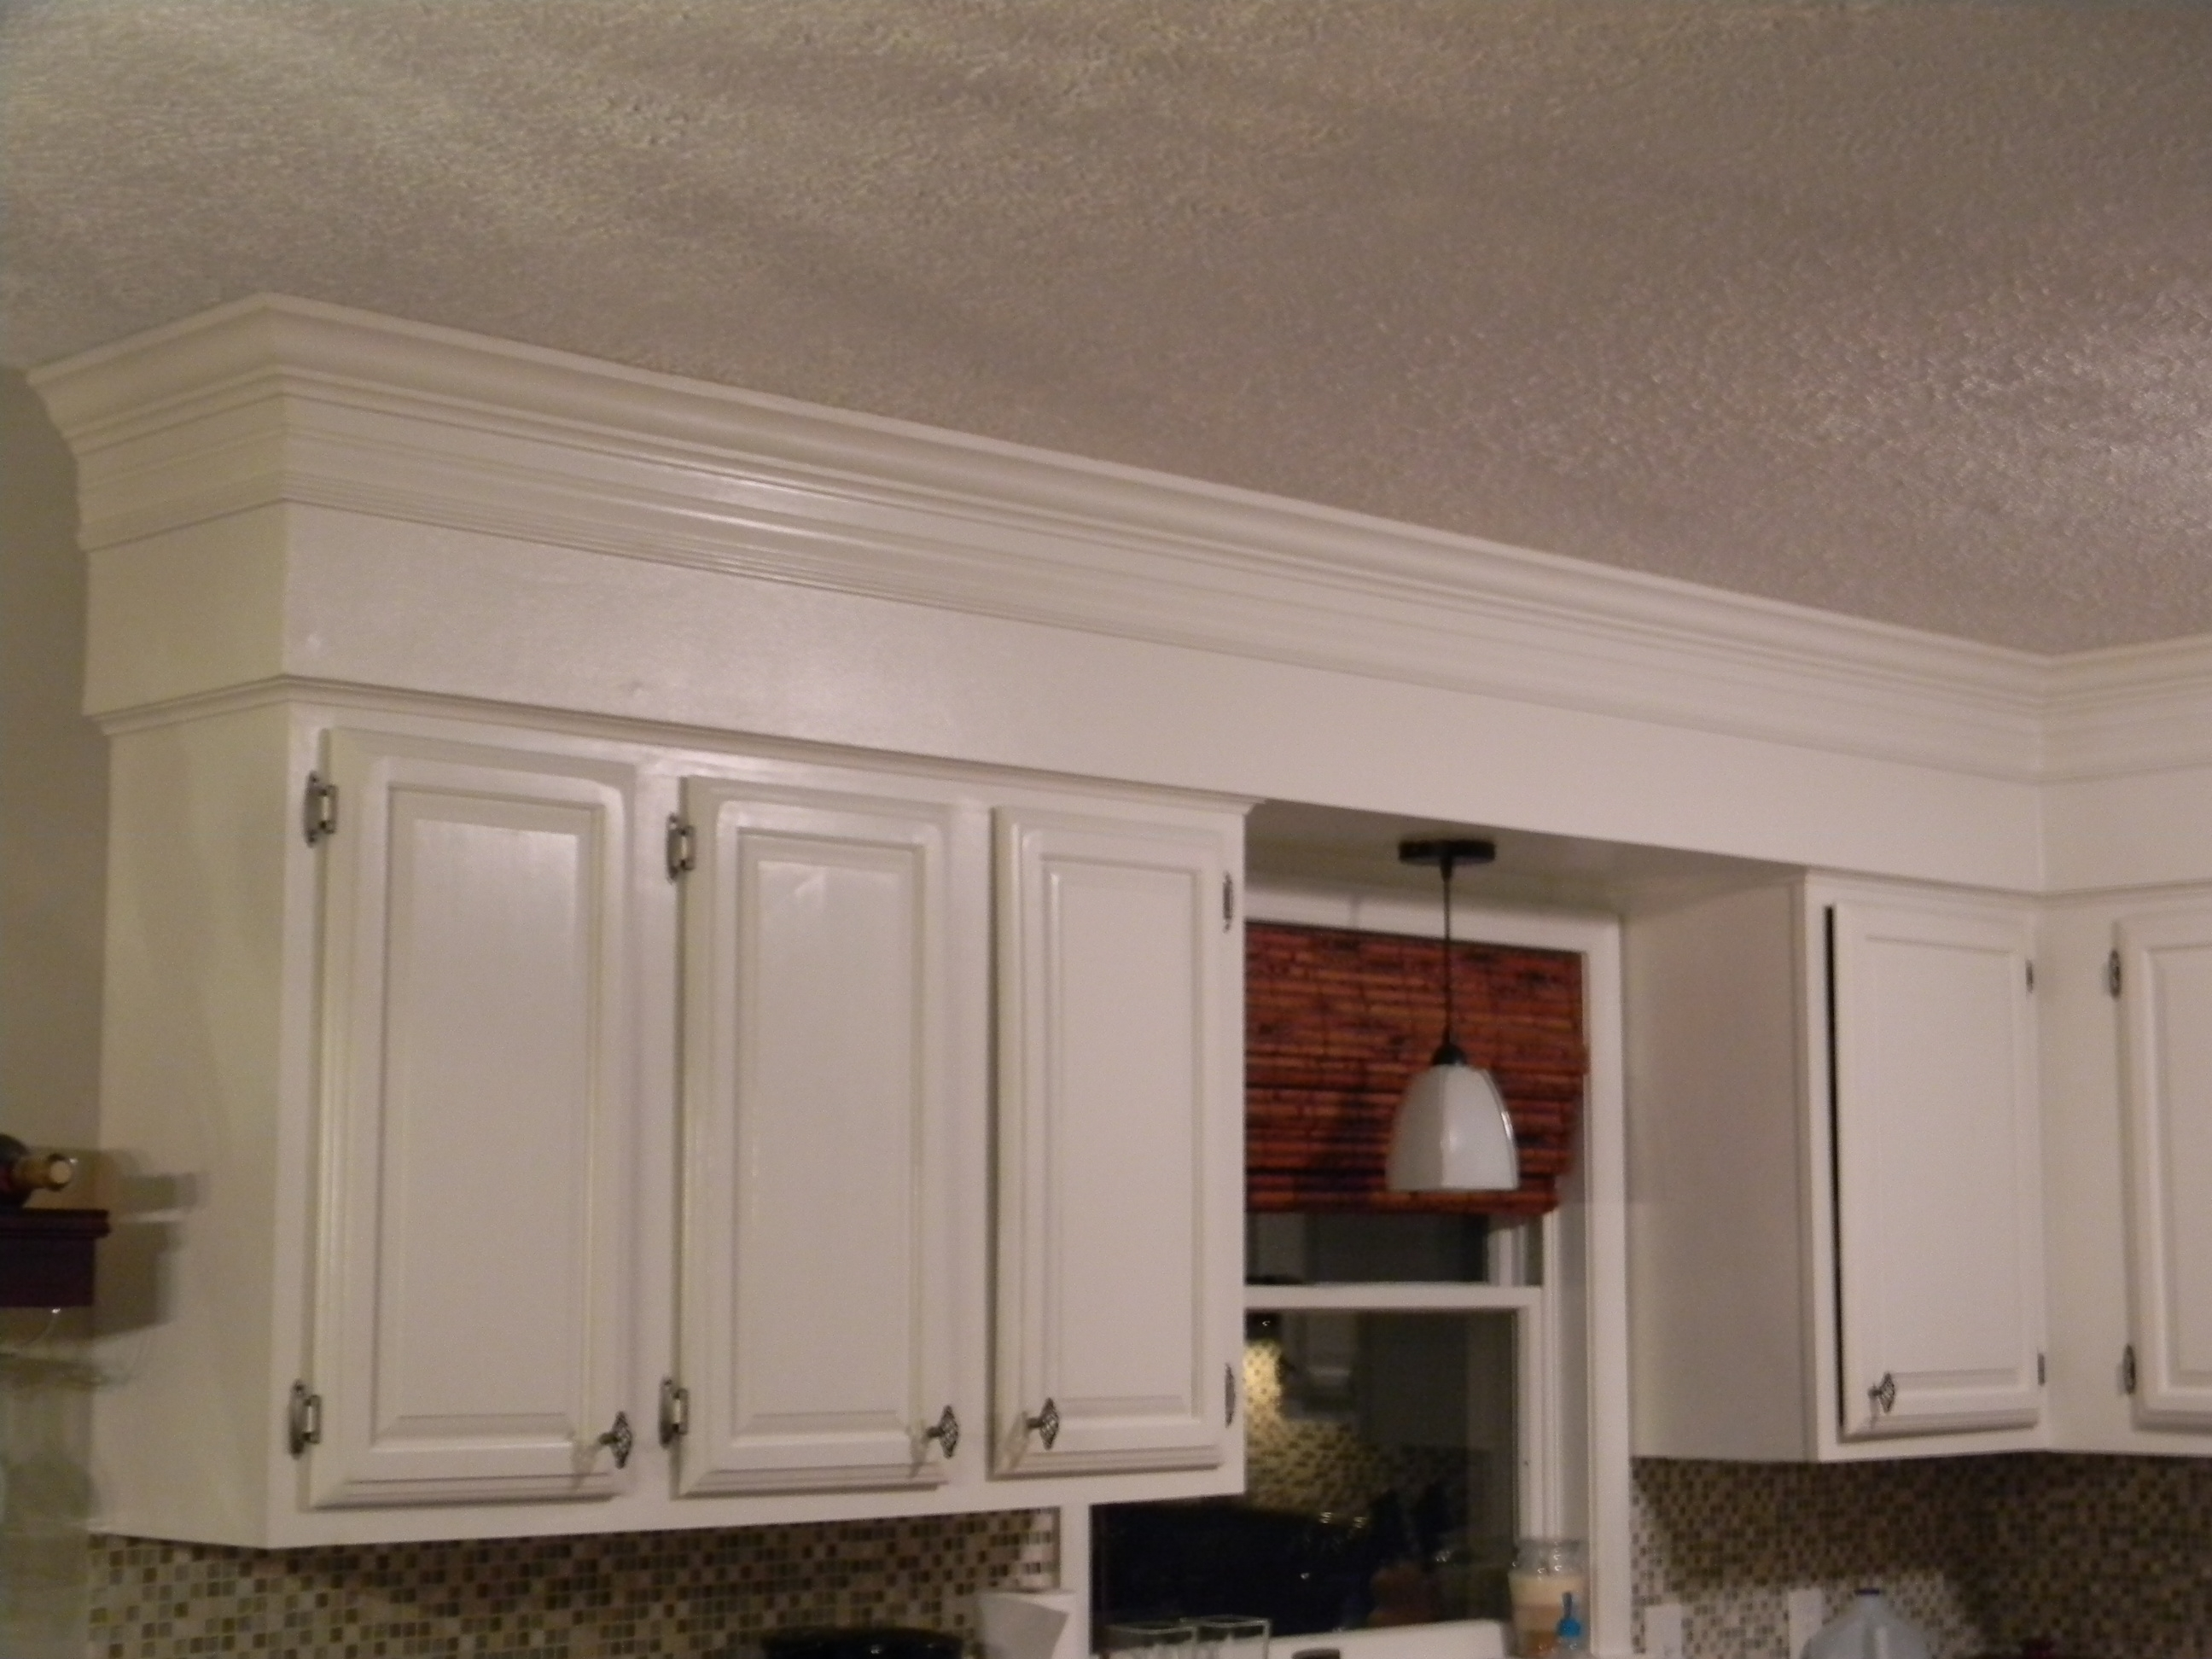 Permalink to Update Kitchen Cabinets With Crown Molding